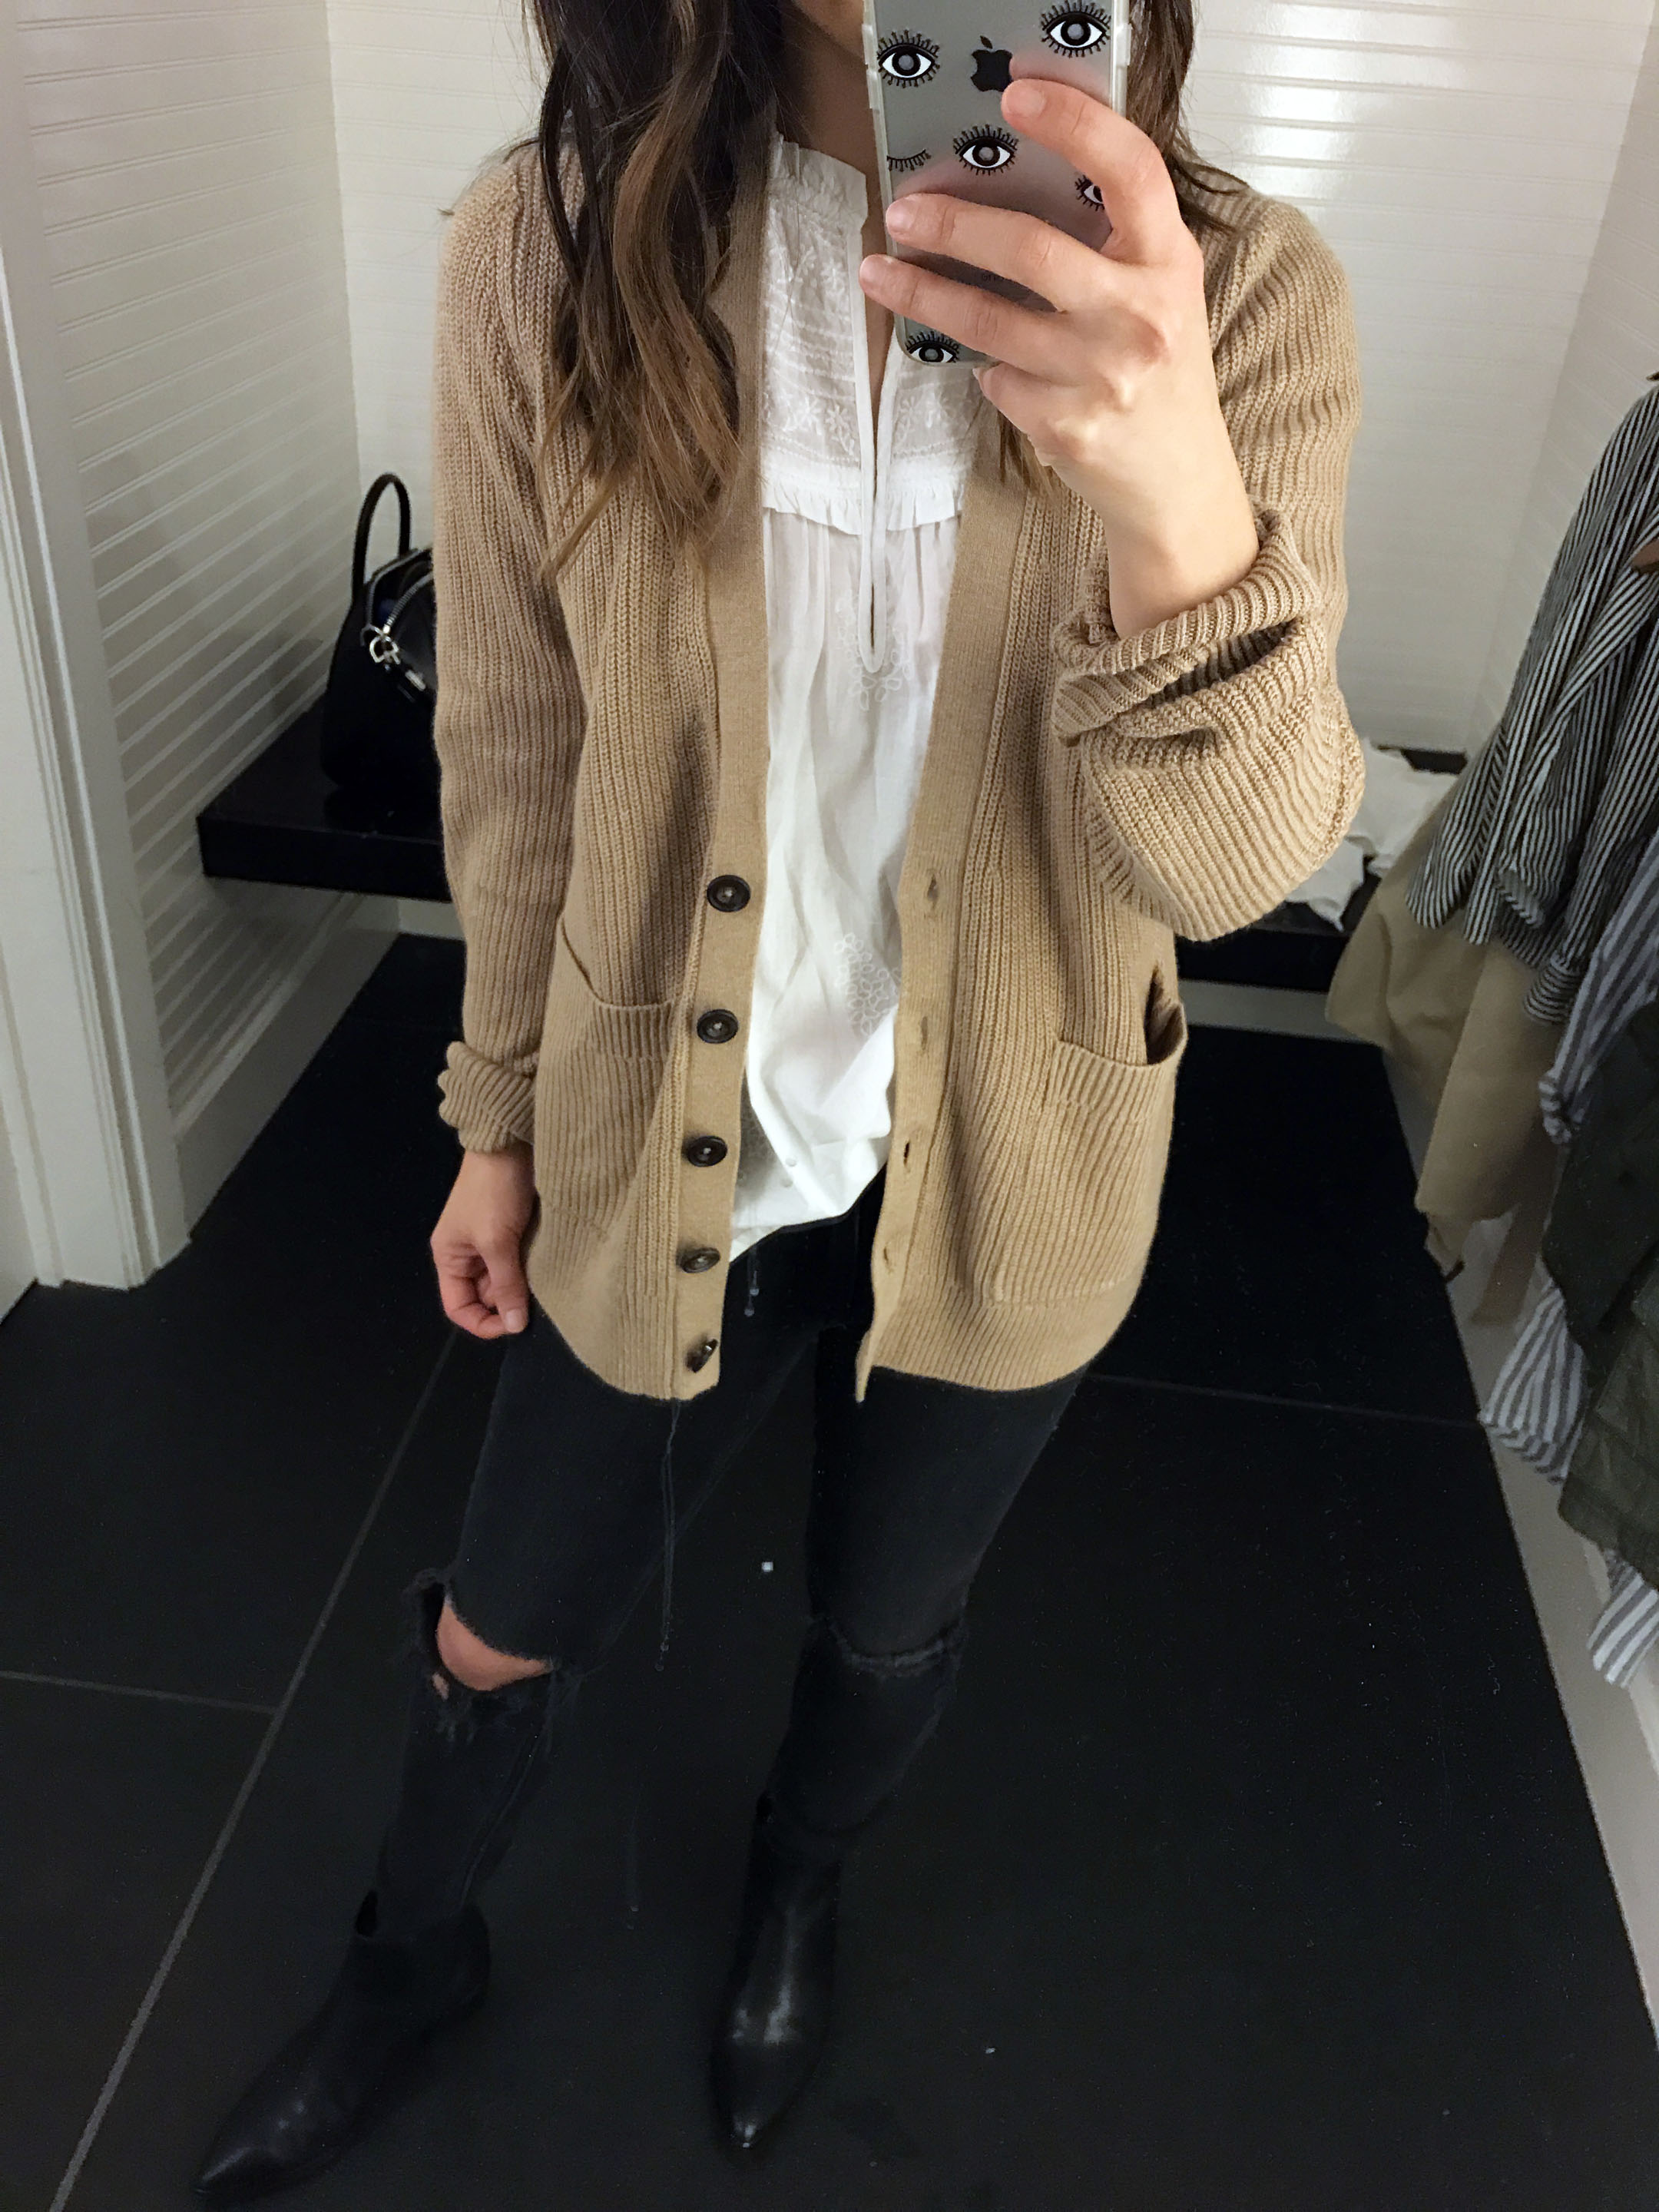 Abercrombie & Fitch cardigan 3